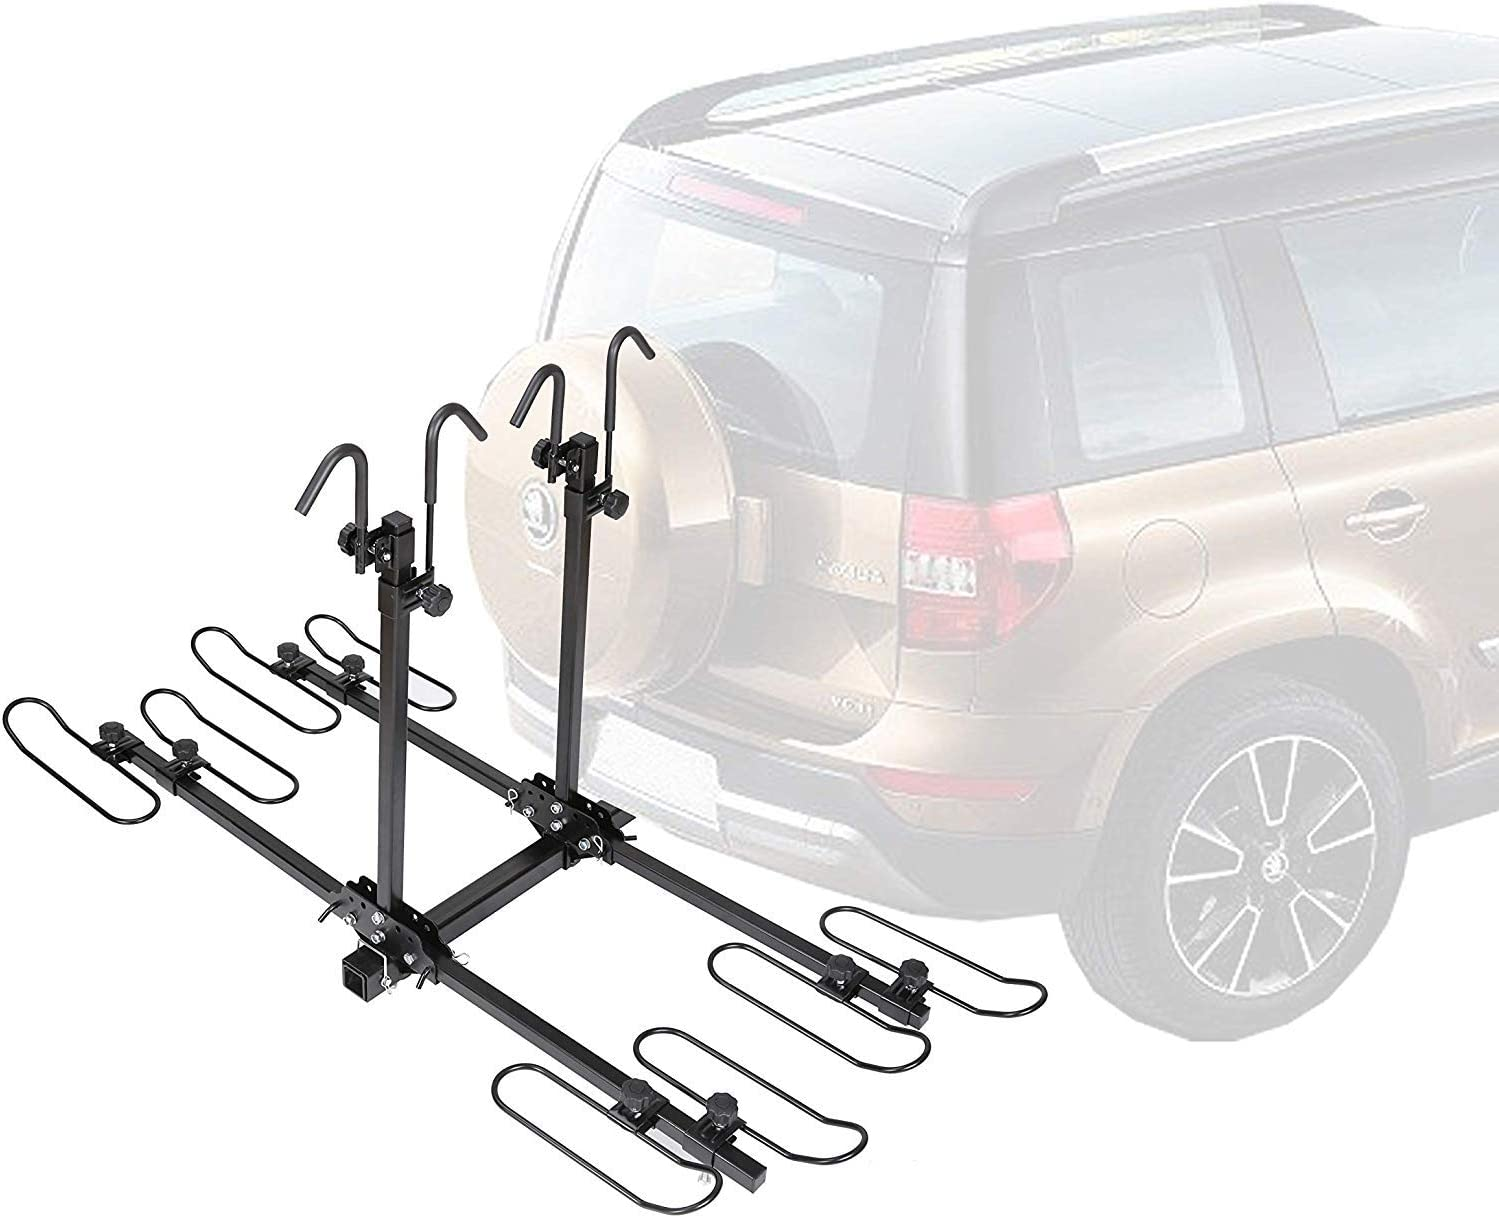 Bike Rack for Car SUV Truck Tow Trailer Hitch Receiver Mount Size 2 Venzo 4 Bike Bicycle Platform Style Carrier Sturdy /& Rust Proof